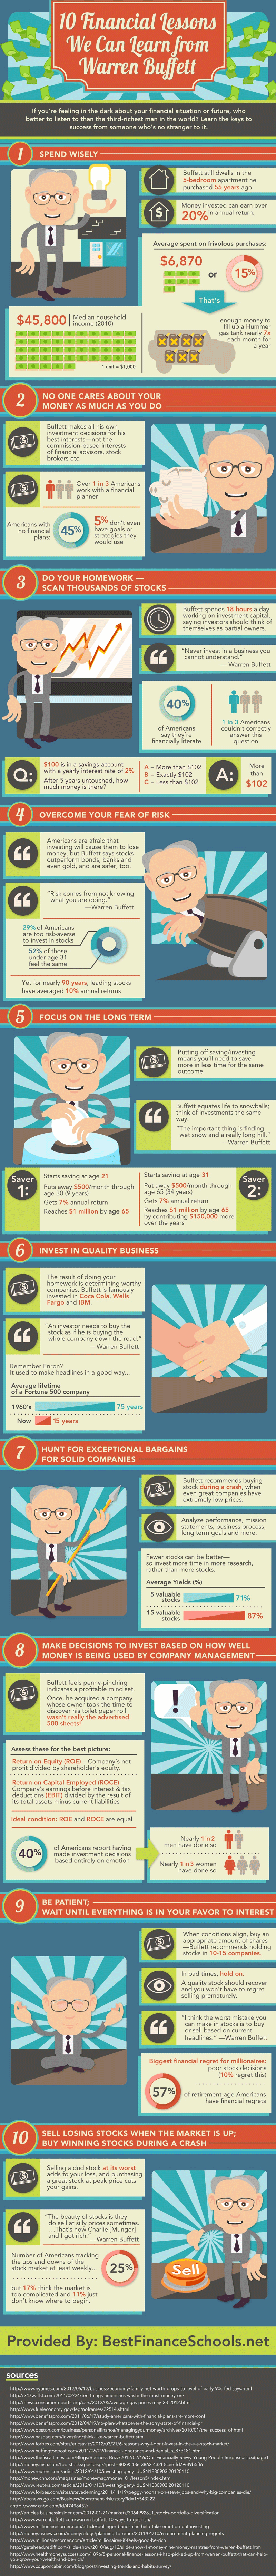 10 Financial Lessons Warren Buffett Can Teach Us Infographic